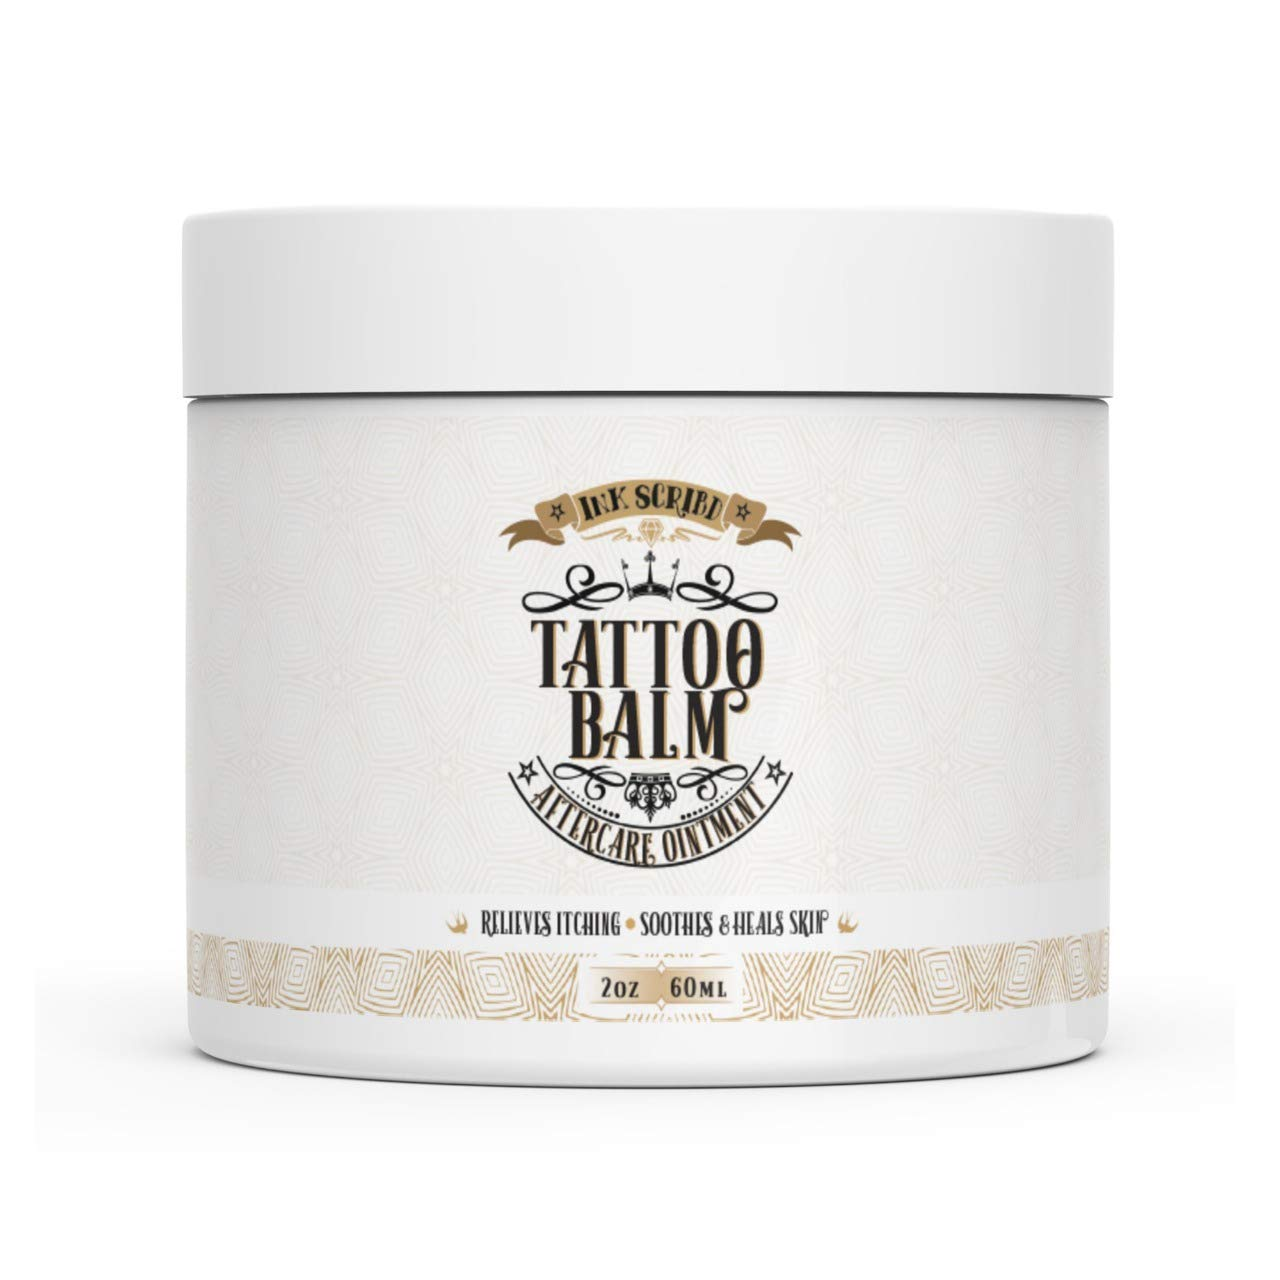 Premium Tattoo Aftercare Healing Balm - Ink Scribd - Relieves Itching, Soothes and Heals - All Natural with Anti-inflammatory Ingredients (2oz) by Bravado Labs